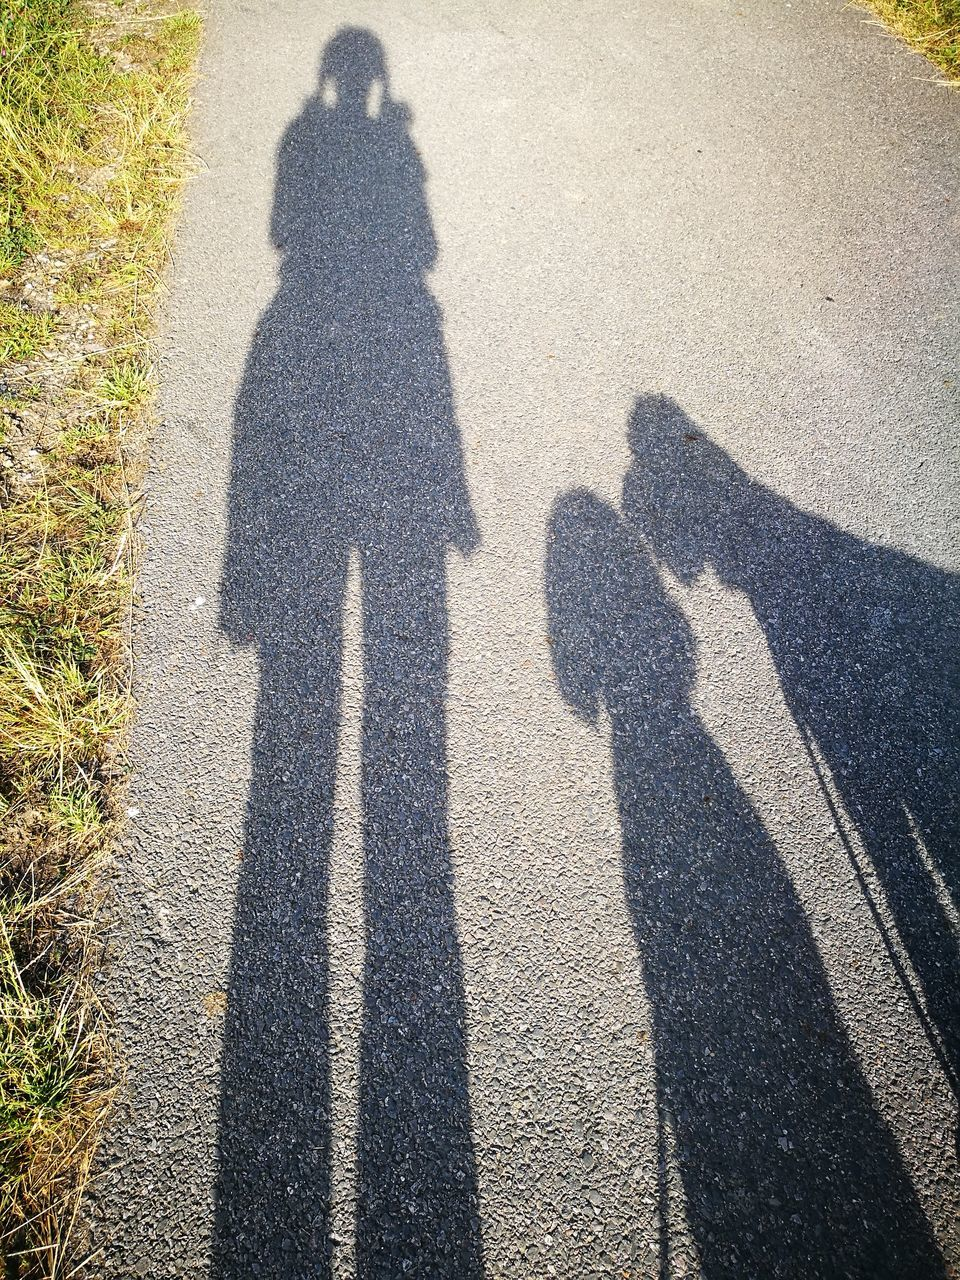 shadow, focus on shadow, sunlight, real people, day, togetherness, high angle view, men, outdoors, lifestyles, women, grass, nature, people